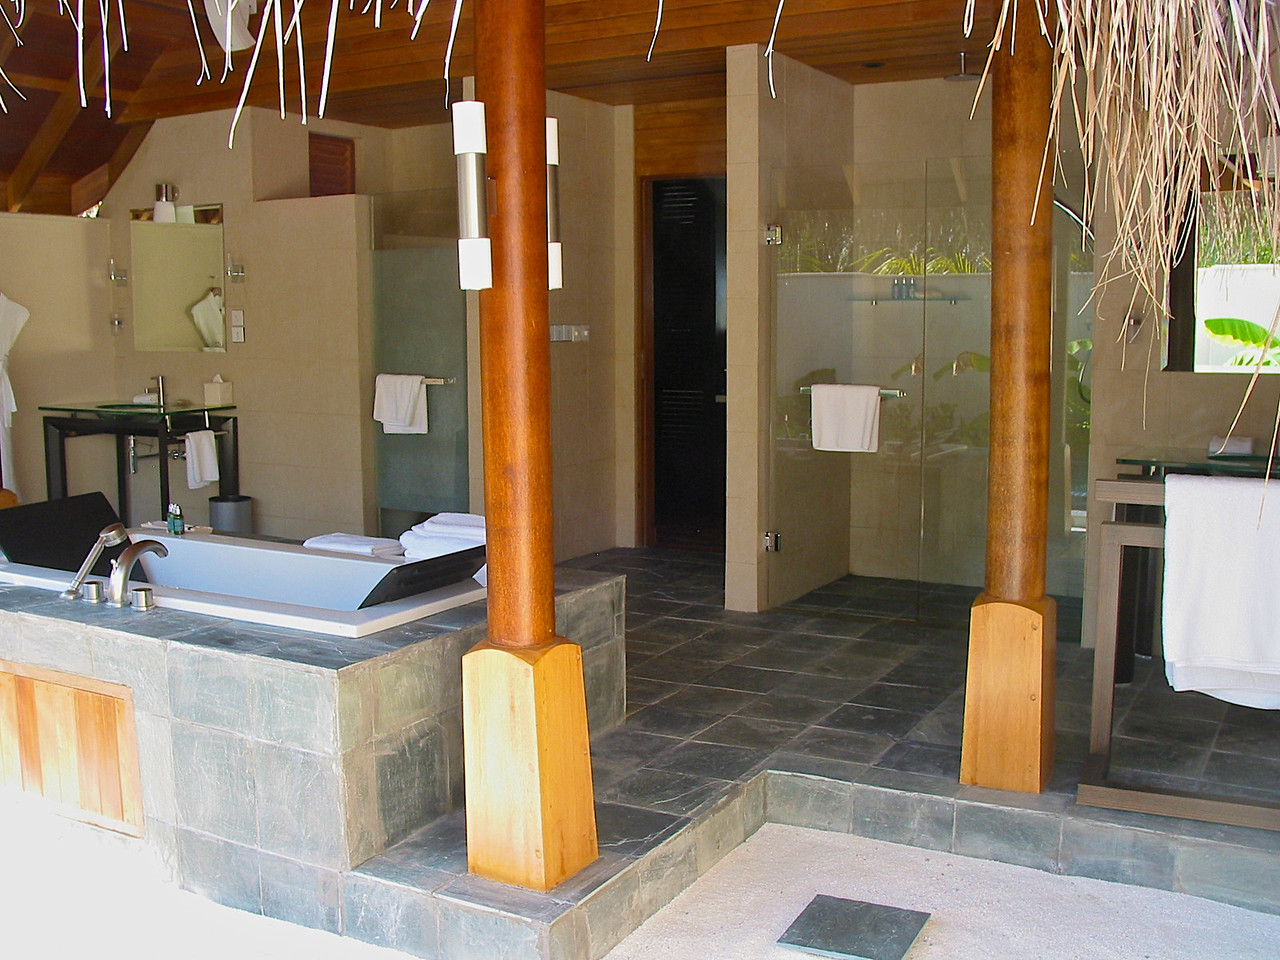 The rest of the bathroom is outside as well, along with double vanities and a second outdoor shower.